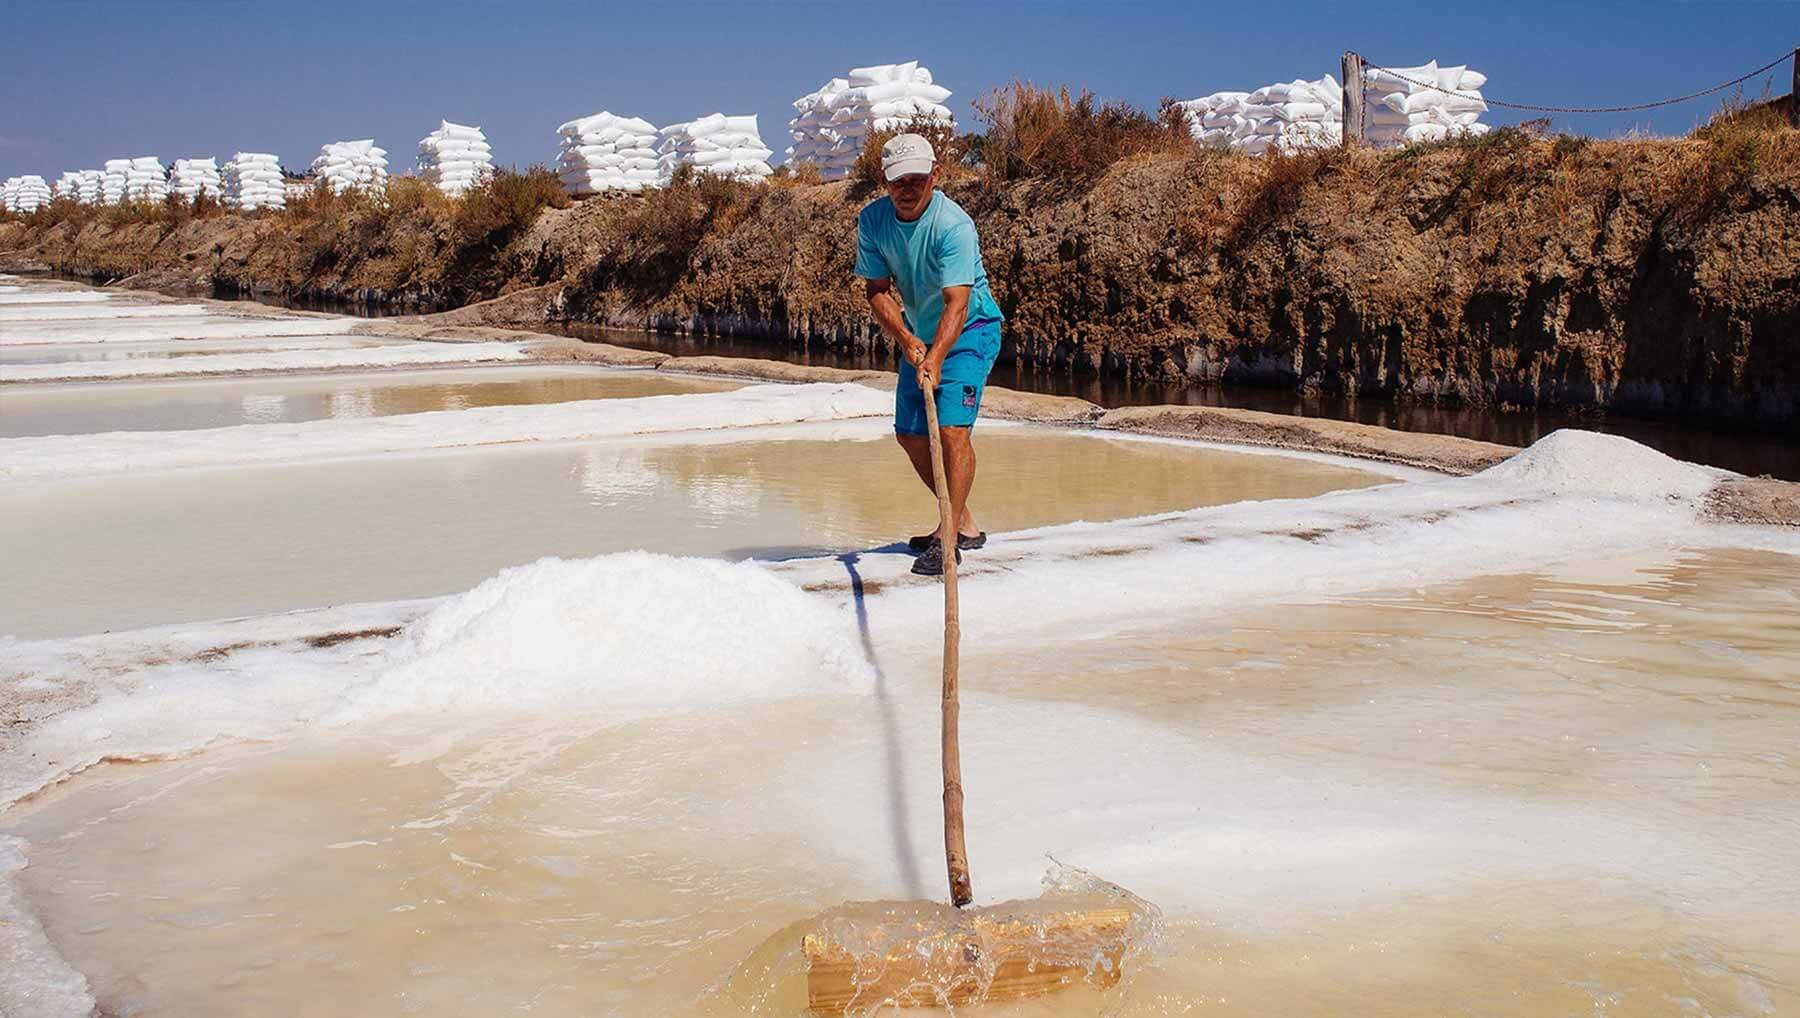 Harvesting salt in Portugal